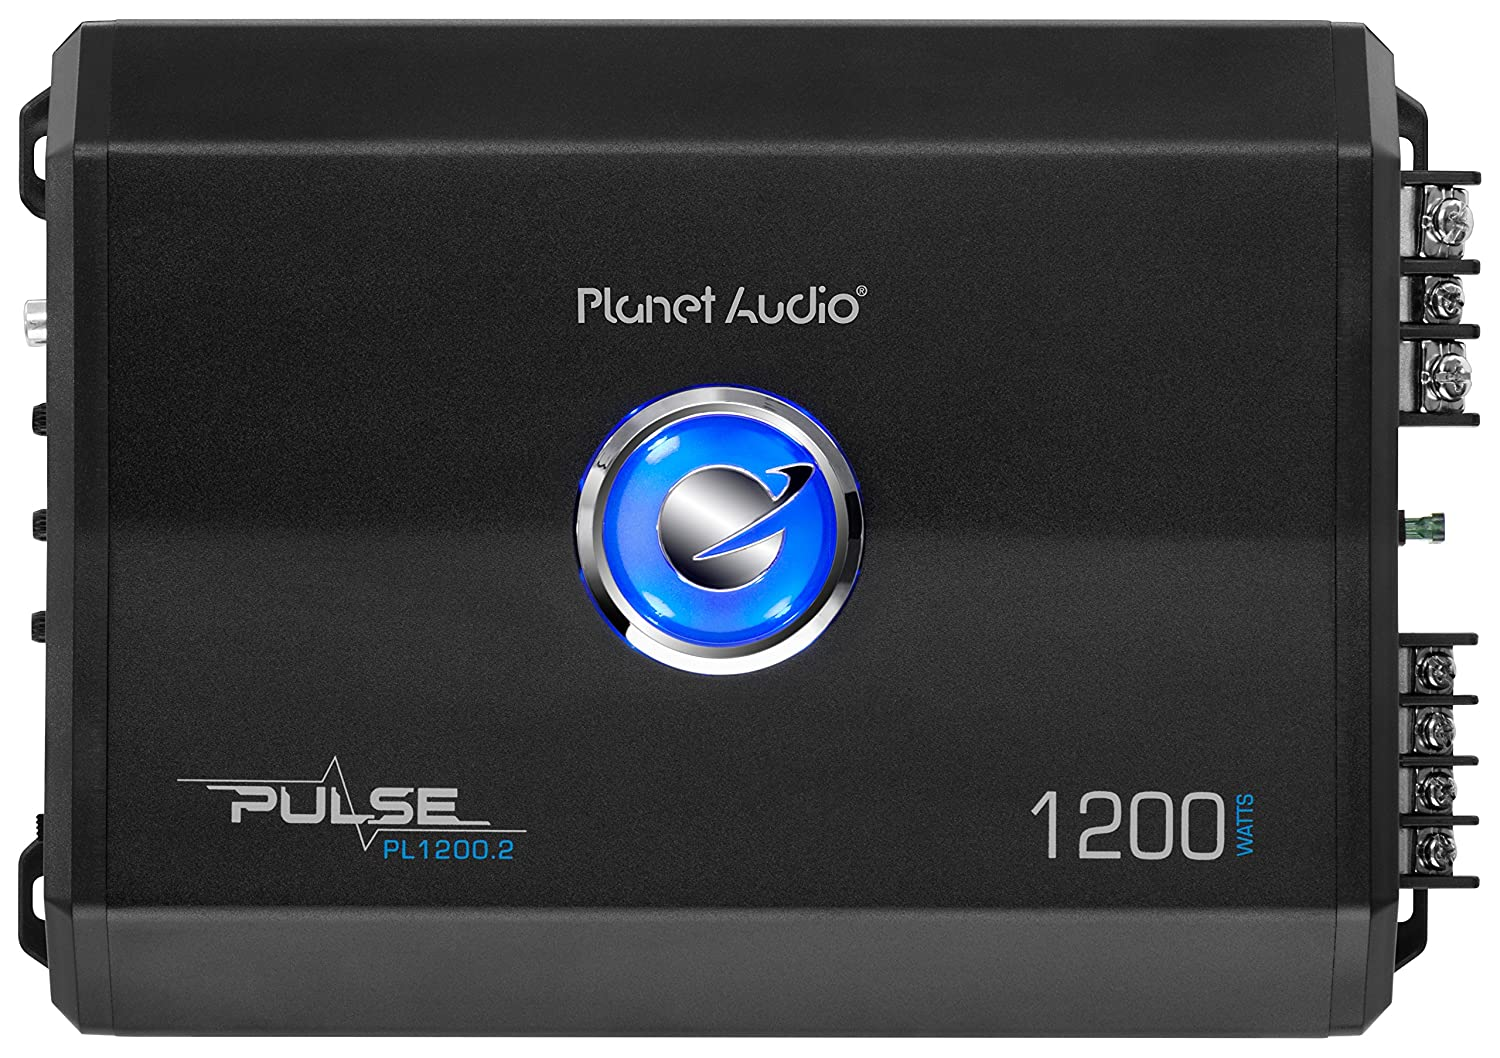 Planet Audio PL1200.2 2 Channel Car Amplifier - 1200 Watts, Full Range, Class A/B, 2/8 Ohm Stable, Mosfet Power Supply, Bridgeable